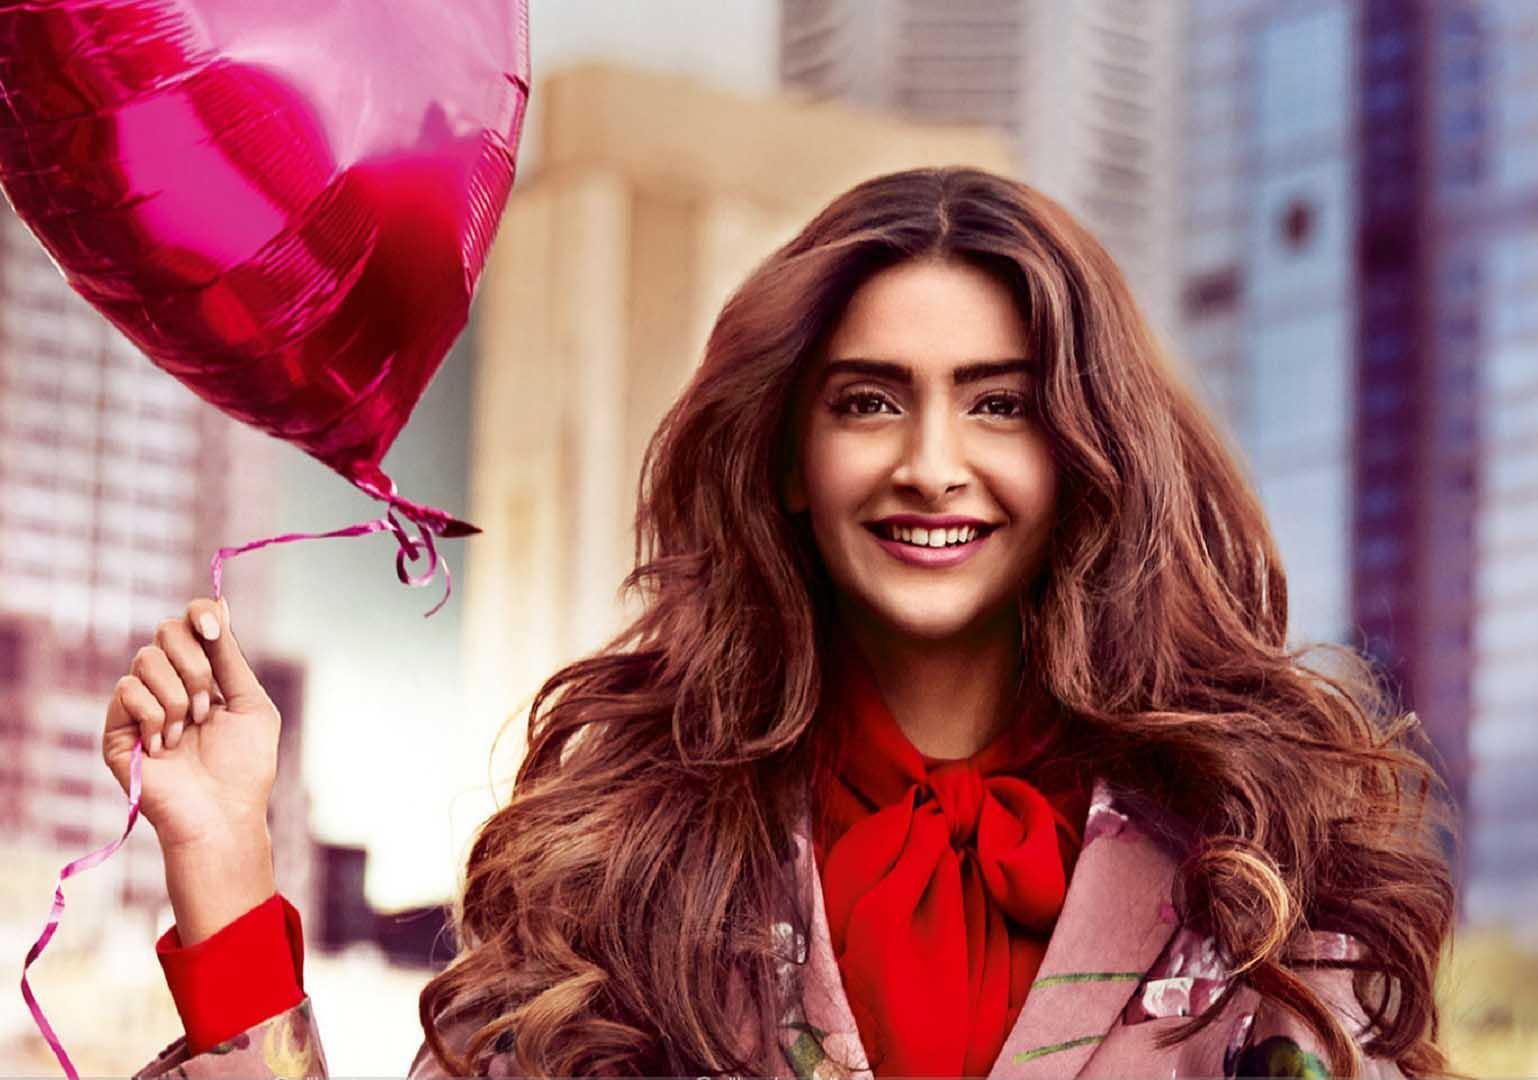 Sonam Kapoor Wallpapers HD for Android - APK Download